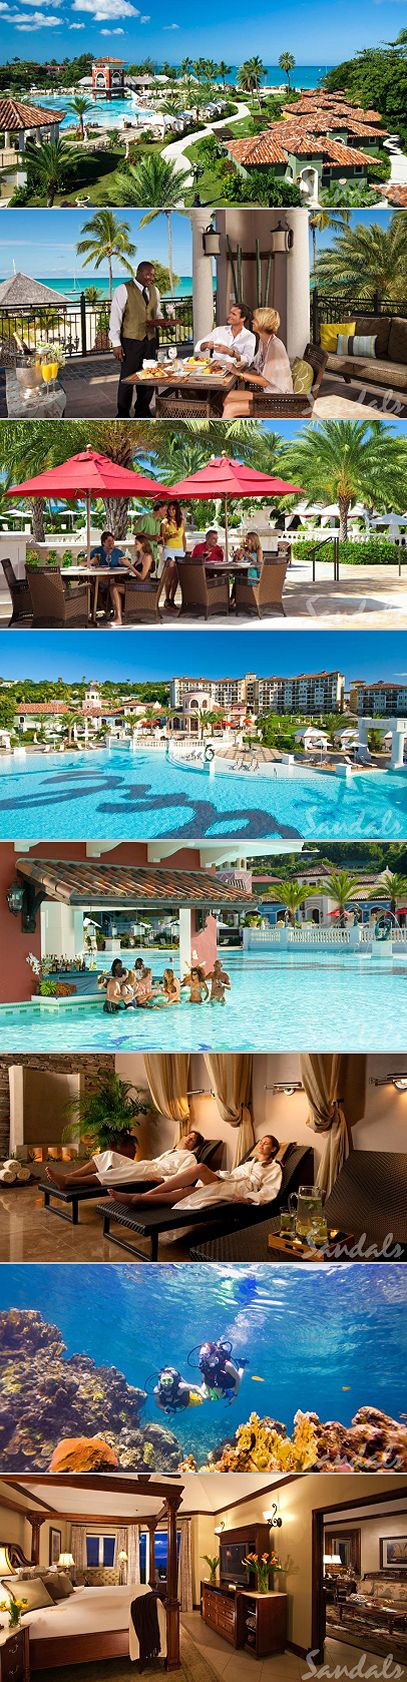 Honeymoon #2 ideas for next year!!! The Best Caribbean All Inclusive Resorts for Couples: Sandals Grande Antigua Resort and Spa